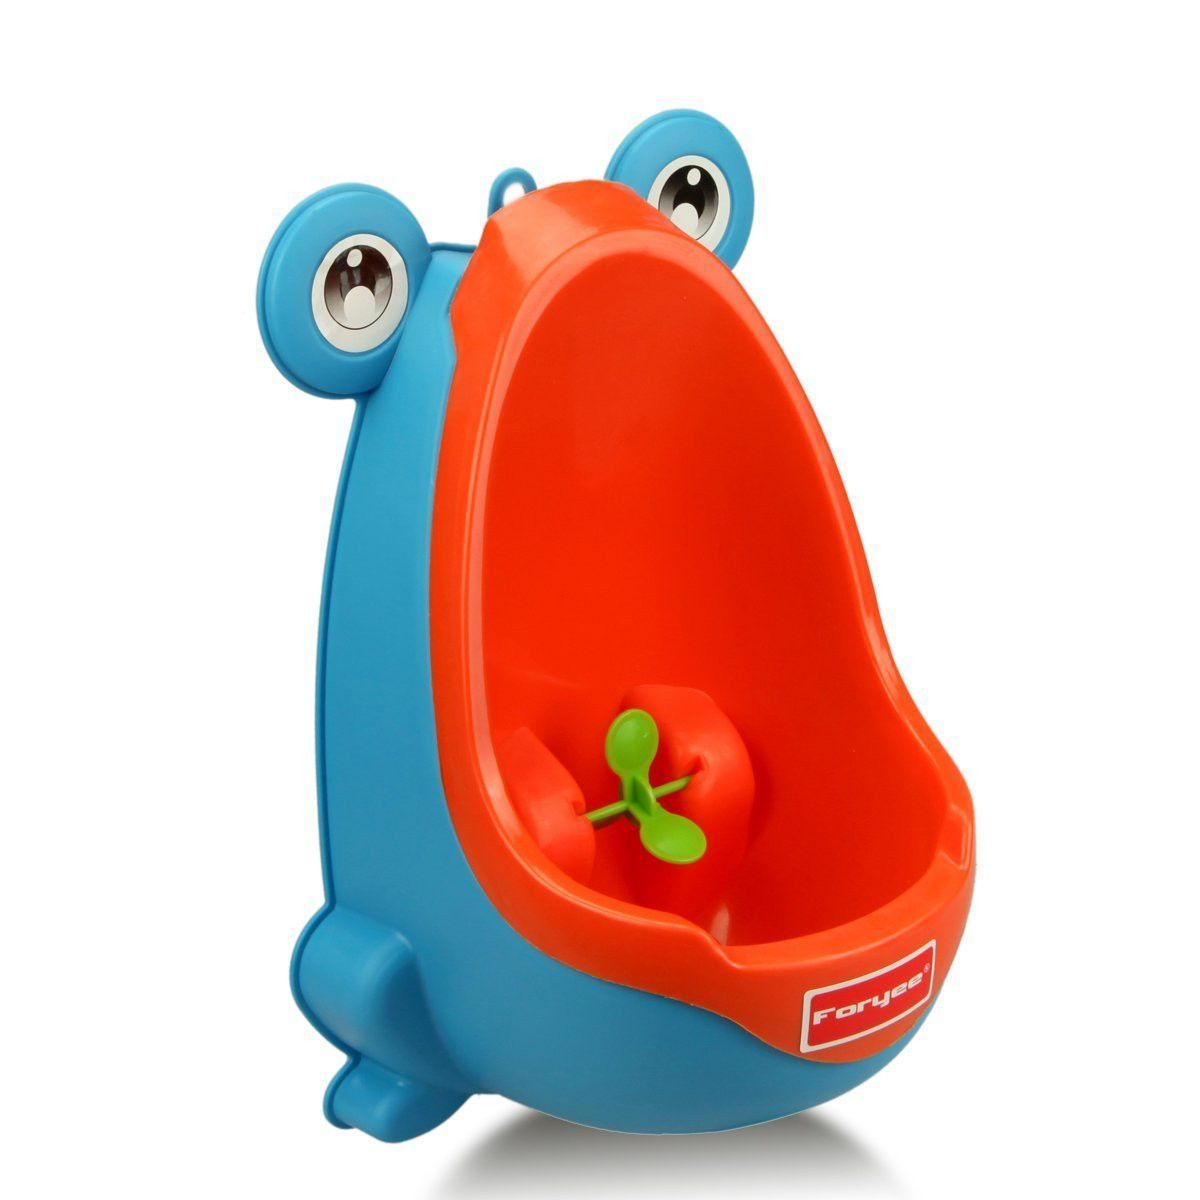 Baby Toilet Training Children Potty Urinal Pee Trainer For Boys W Aiming Target Kids Potty Potty Training Urinal Baby Toilet